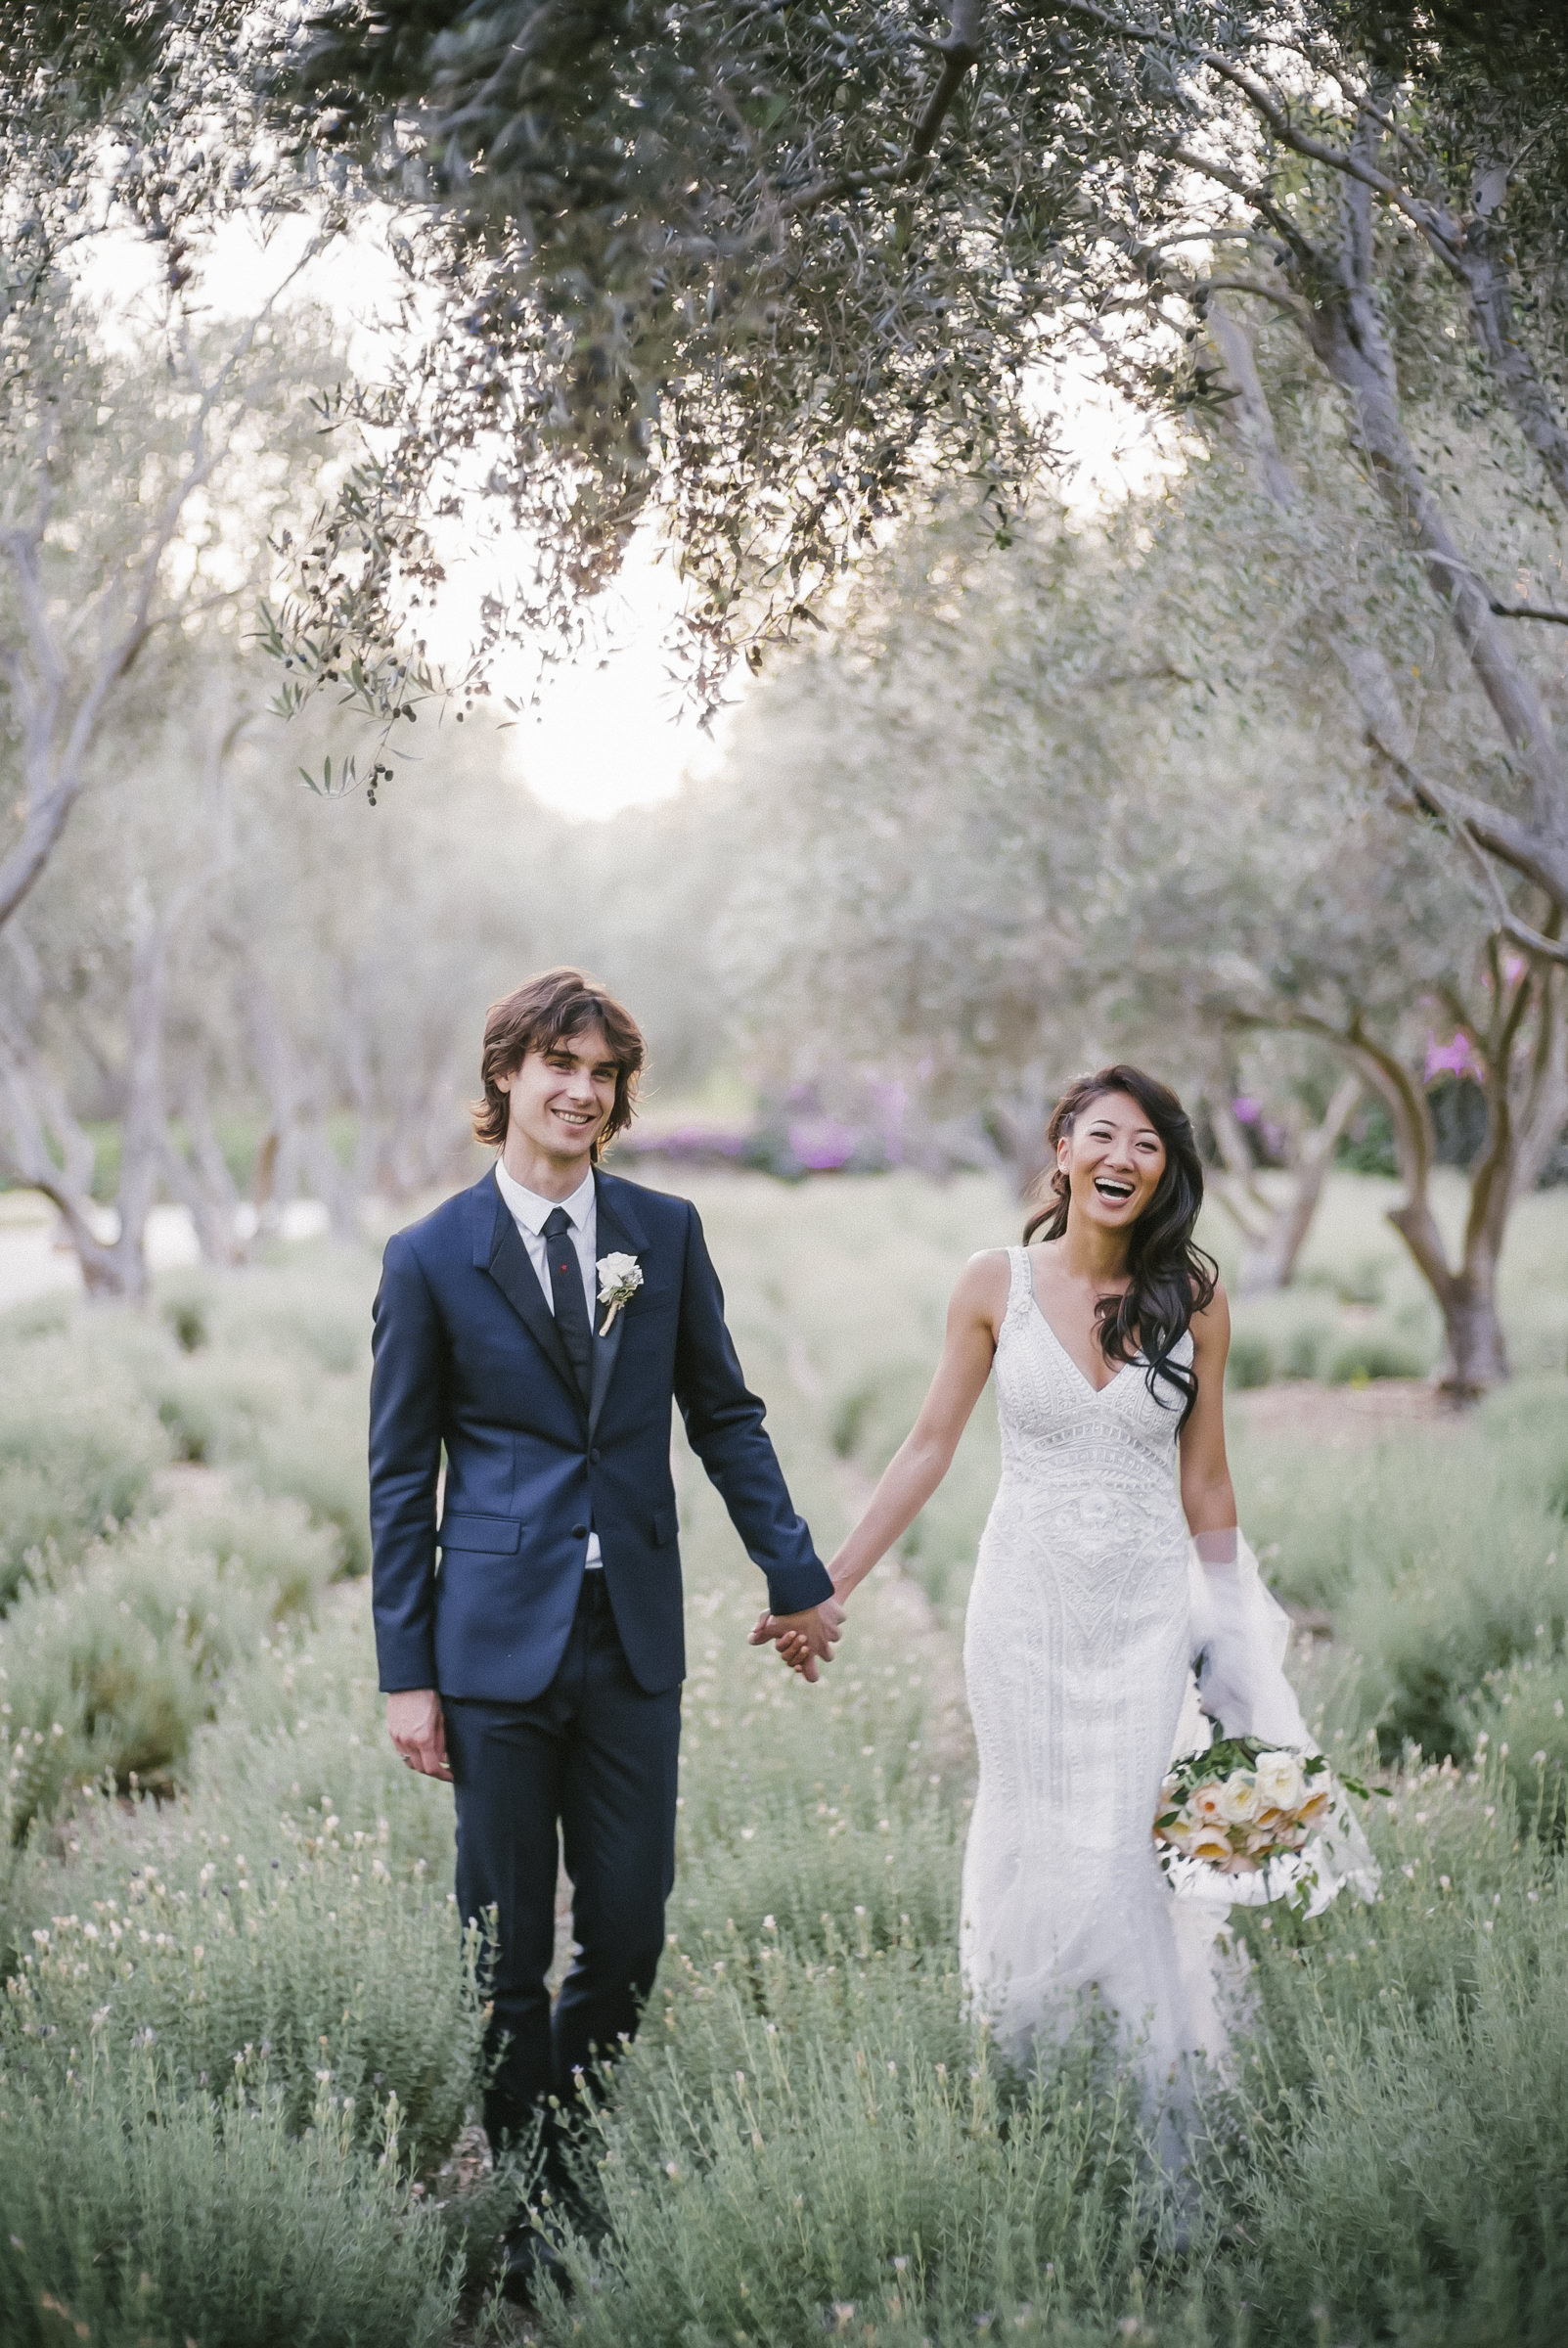 Happy bride ad groom in lavender field- photo by Amy and Stuart Photography